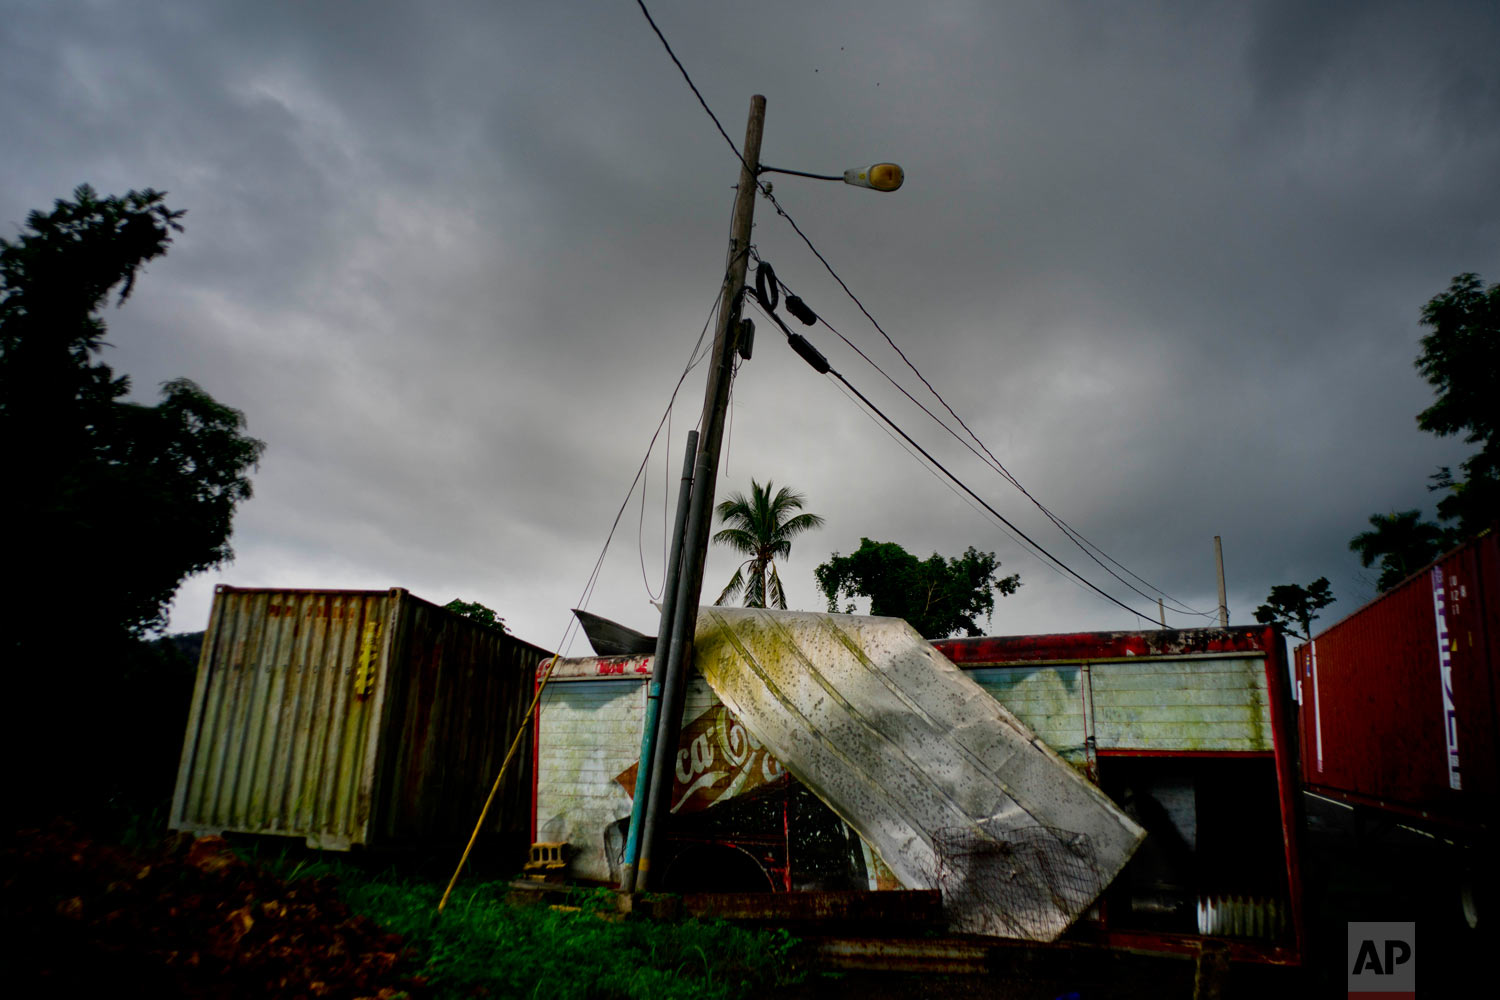 In this Sept. 7, 2018 photo, a Coca-Cola trailer destroyed one year ago by Hurricane Maria stands on the side of the road in Orocovis, Puerto Rico. (AP Photo/Ramon Espinosa)